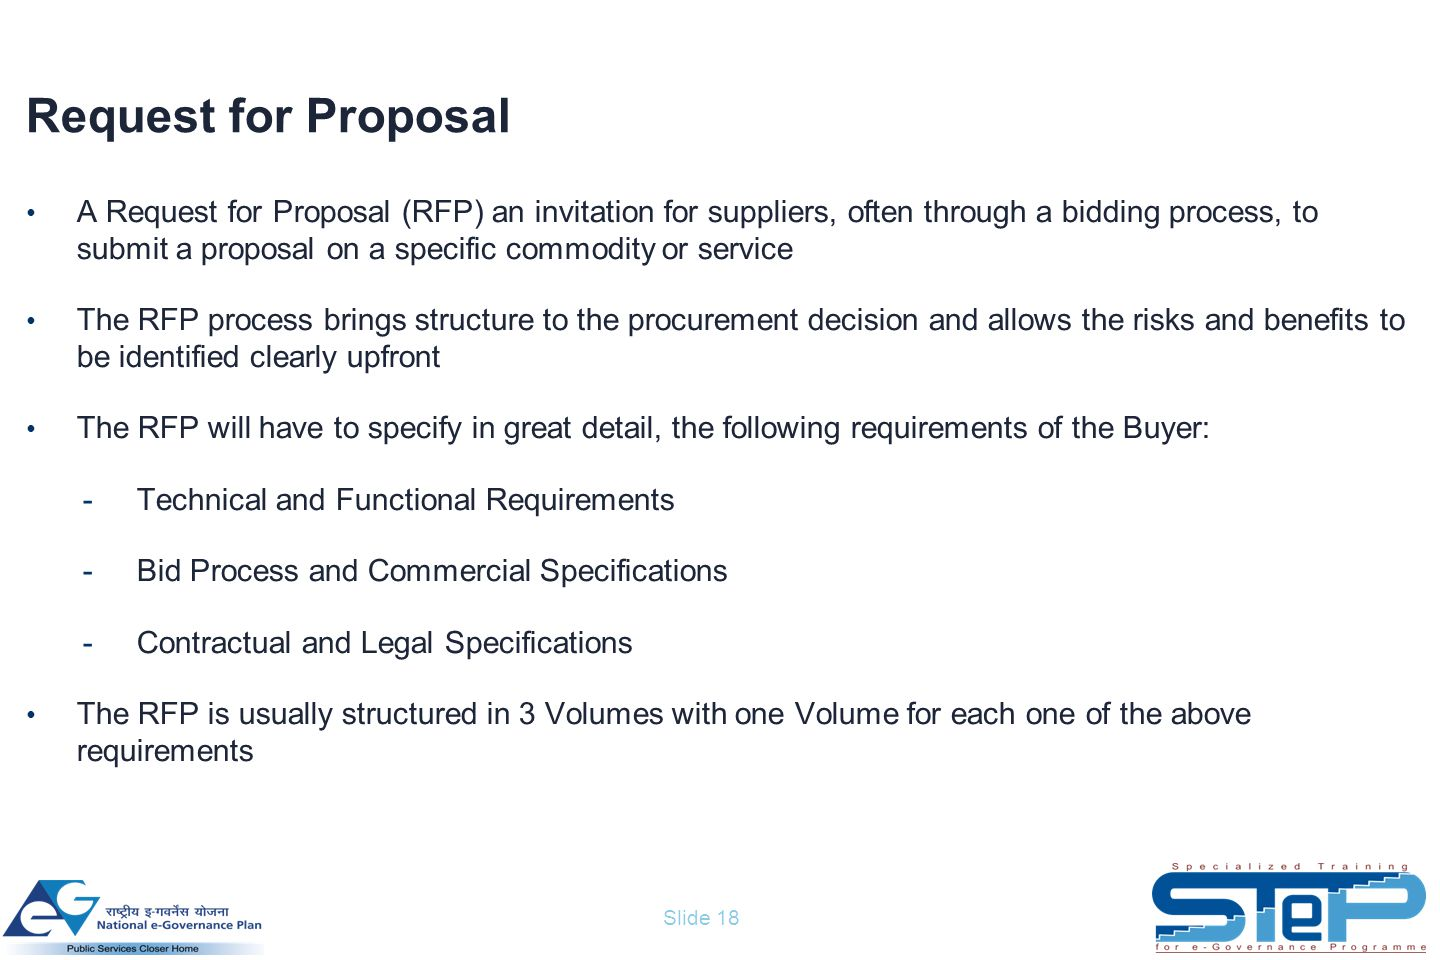 Slide 18 Request for Proposal A Request for Proposal (RFP) an invitation for suppliers, often through a bidding process, to submit a proposal on a specific commodity or service The RFP process brings structure to the procurement decision and allows the risks and benefits to be identified clearly upfront The RFP will have to specify in great detail, the following requirements of the Buyer: -Technical and Functional Requirements -Bid Process and Commercial Specifications -Contractual and Legal Specifications The RFP is usually structured in 3 Volumes with one Volume for each one of the above requirements